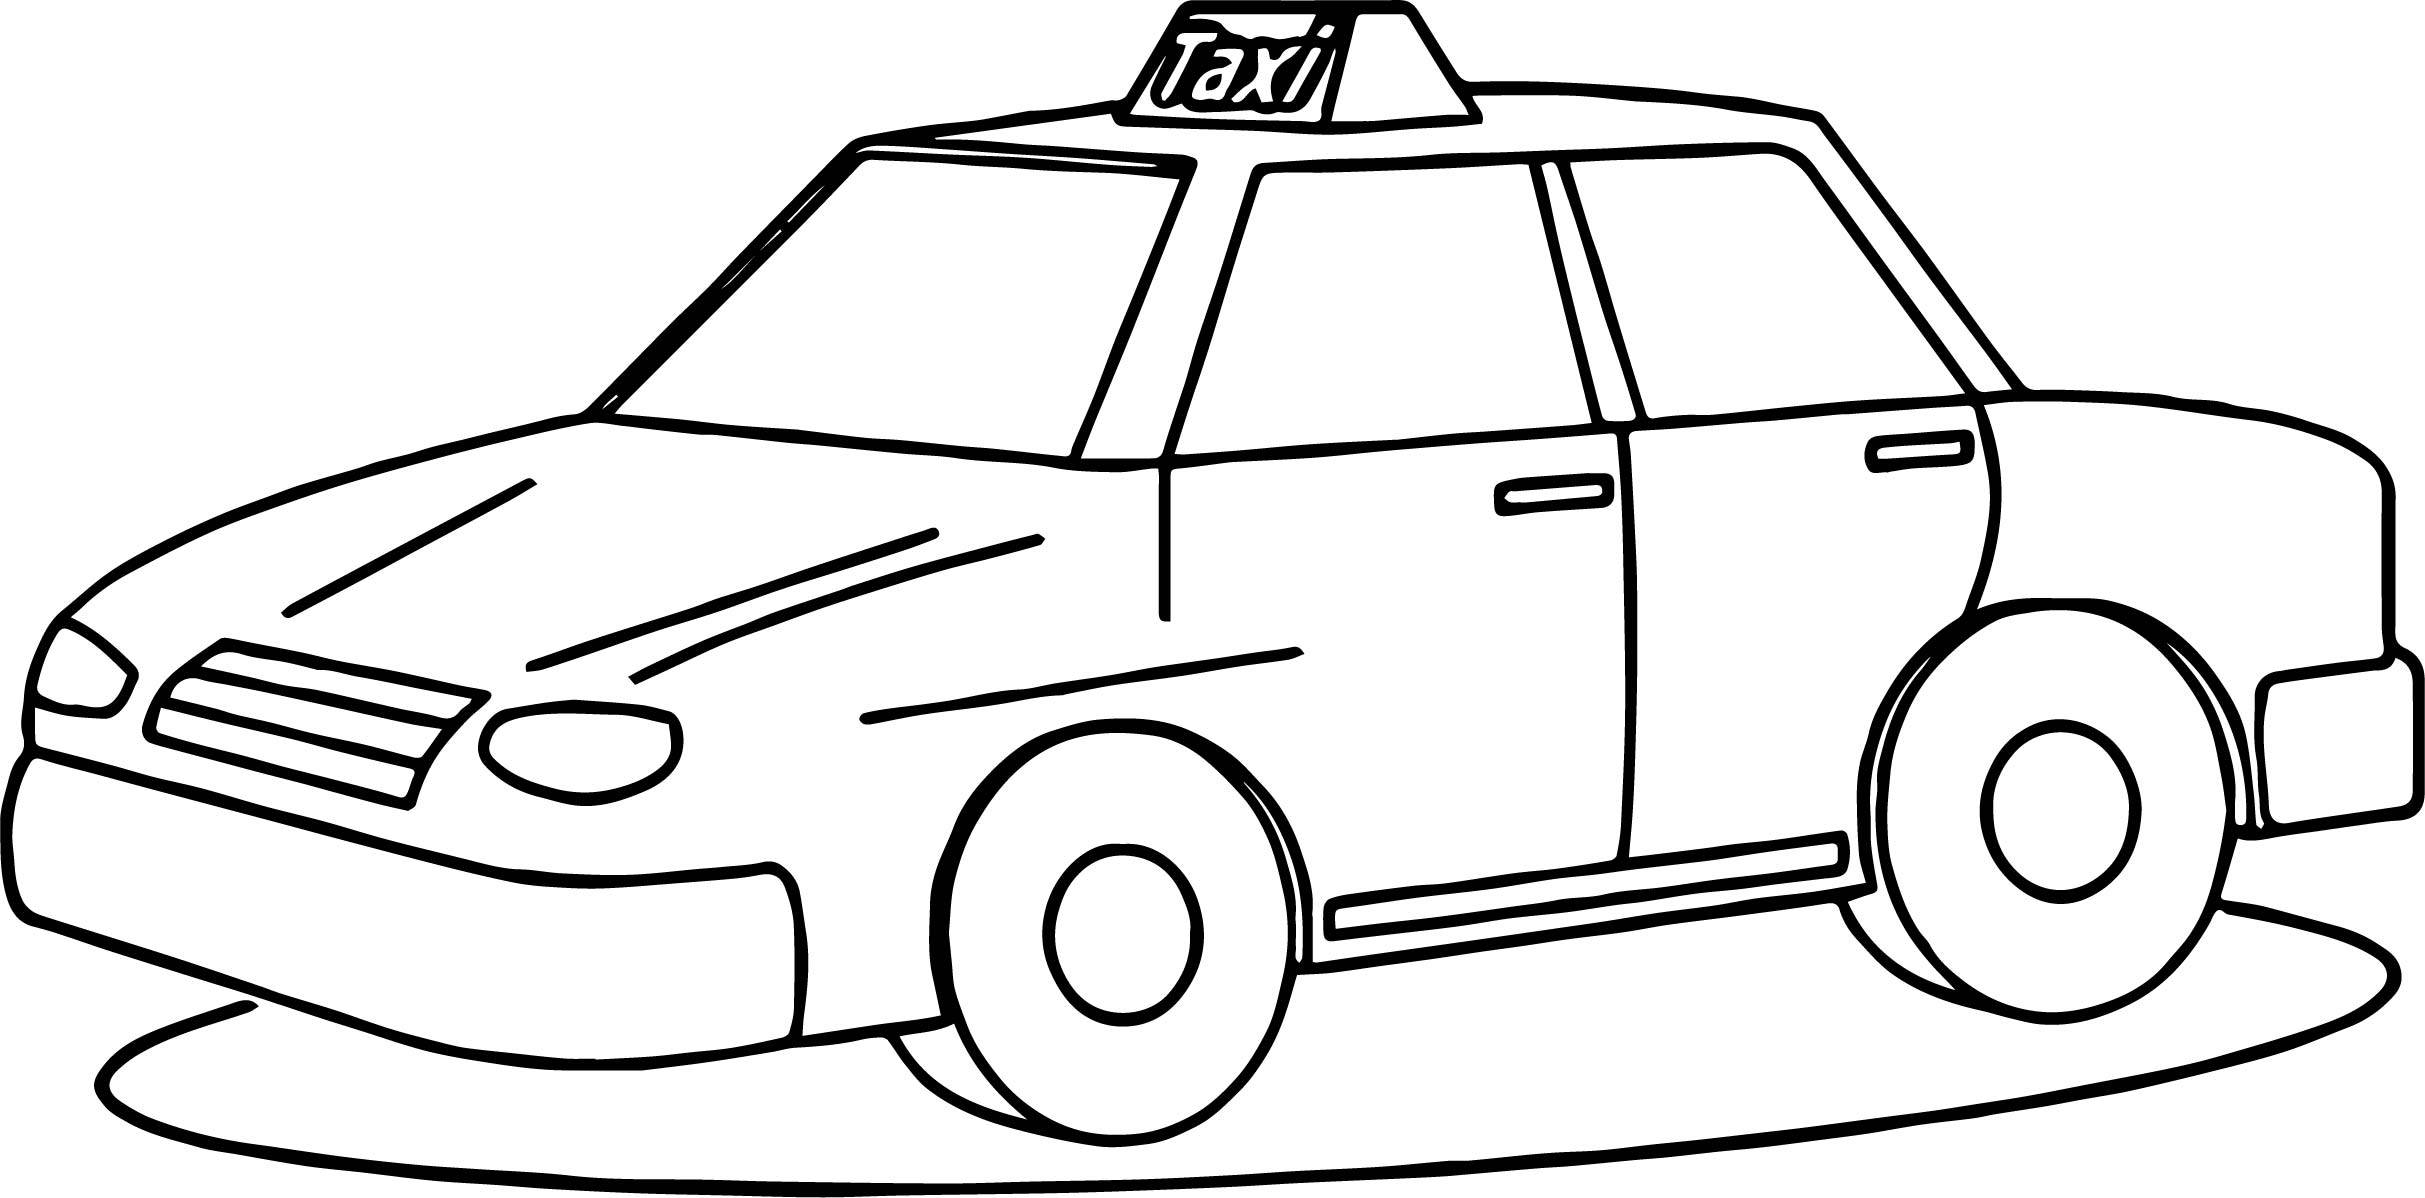 Taxi Driver Fine Car Coloring Page Wecoloringpage